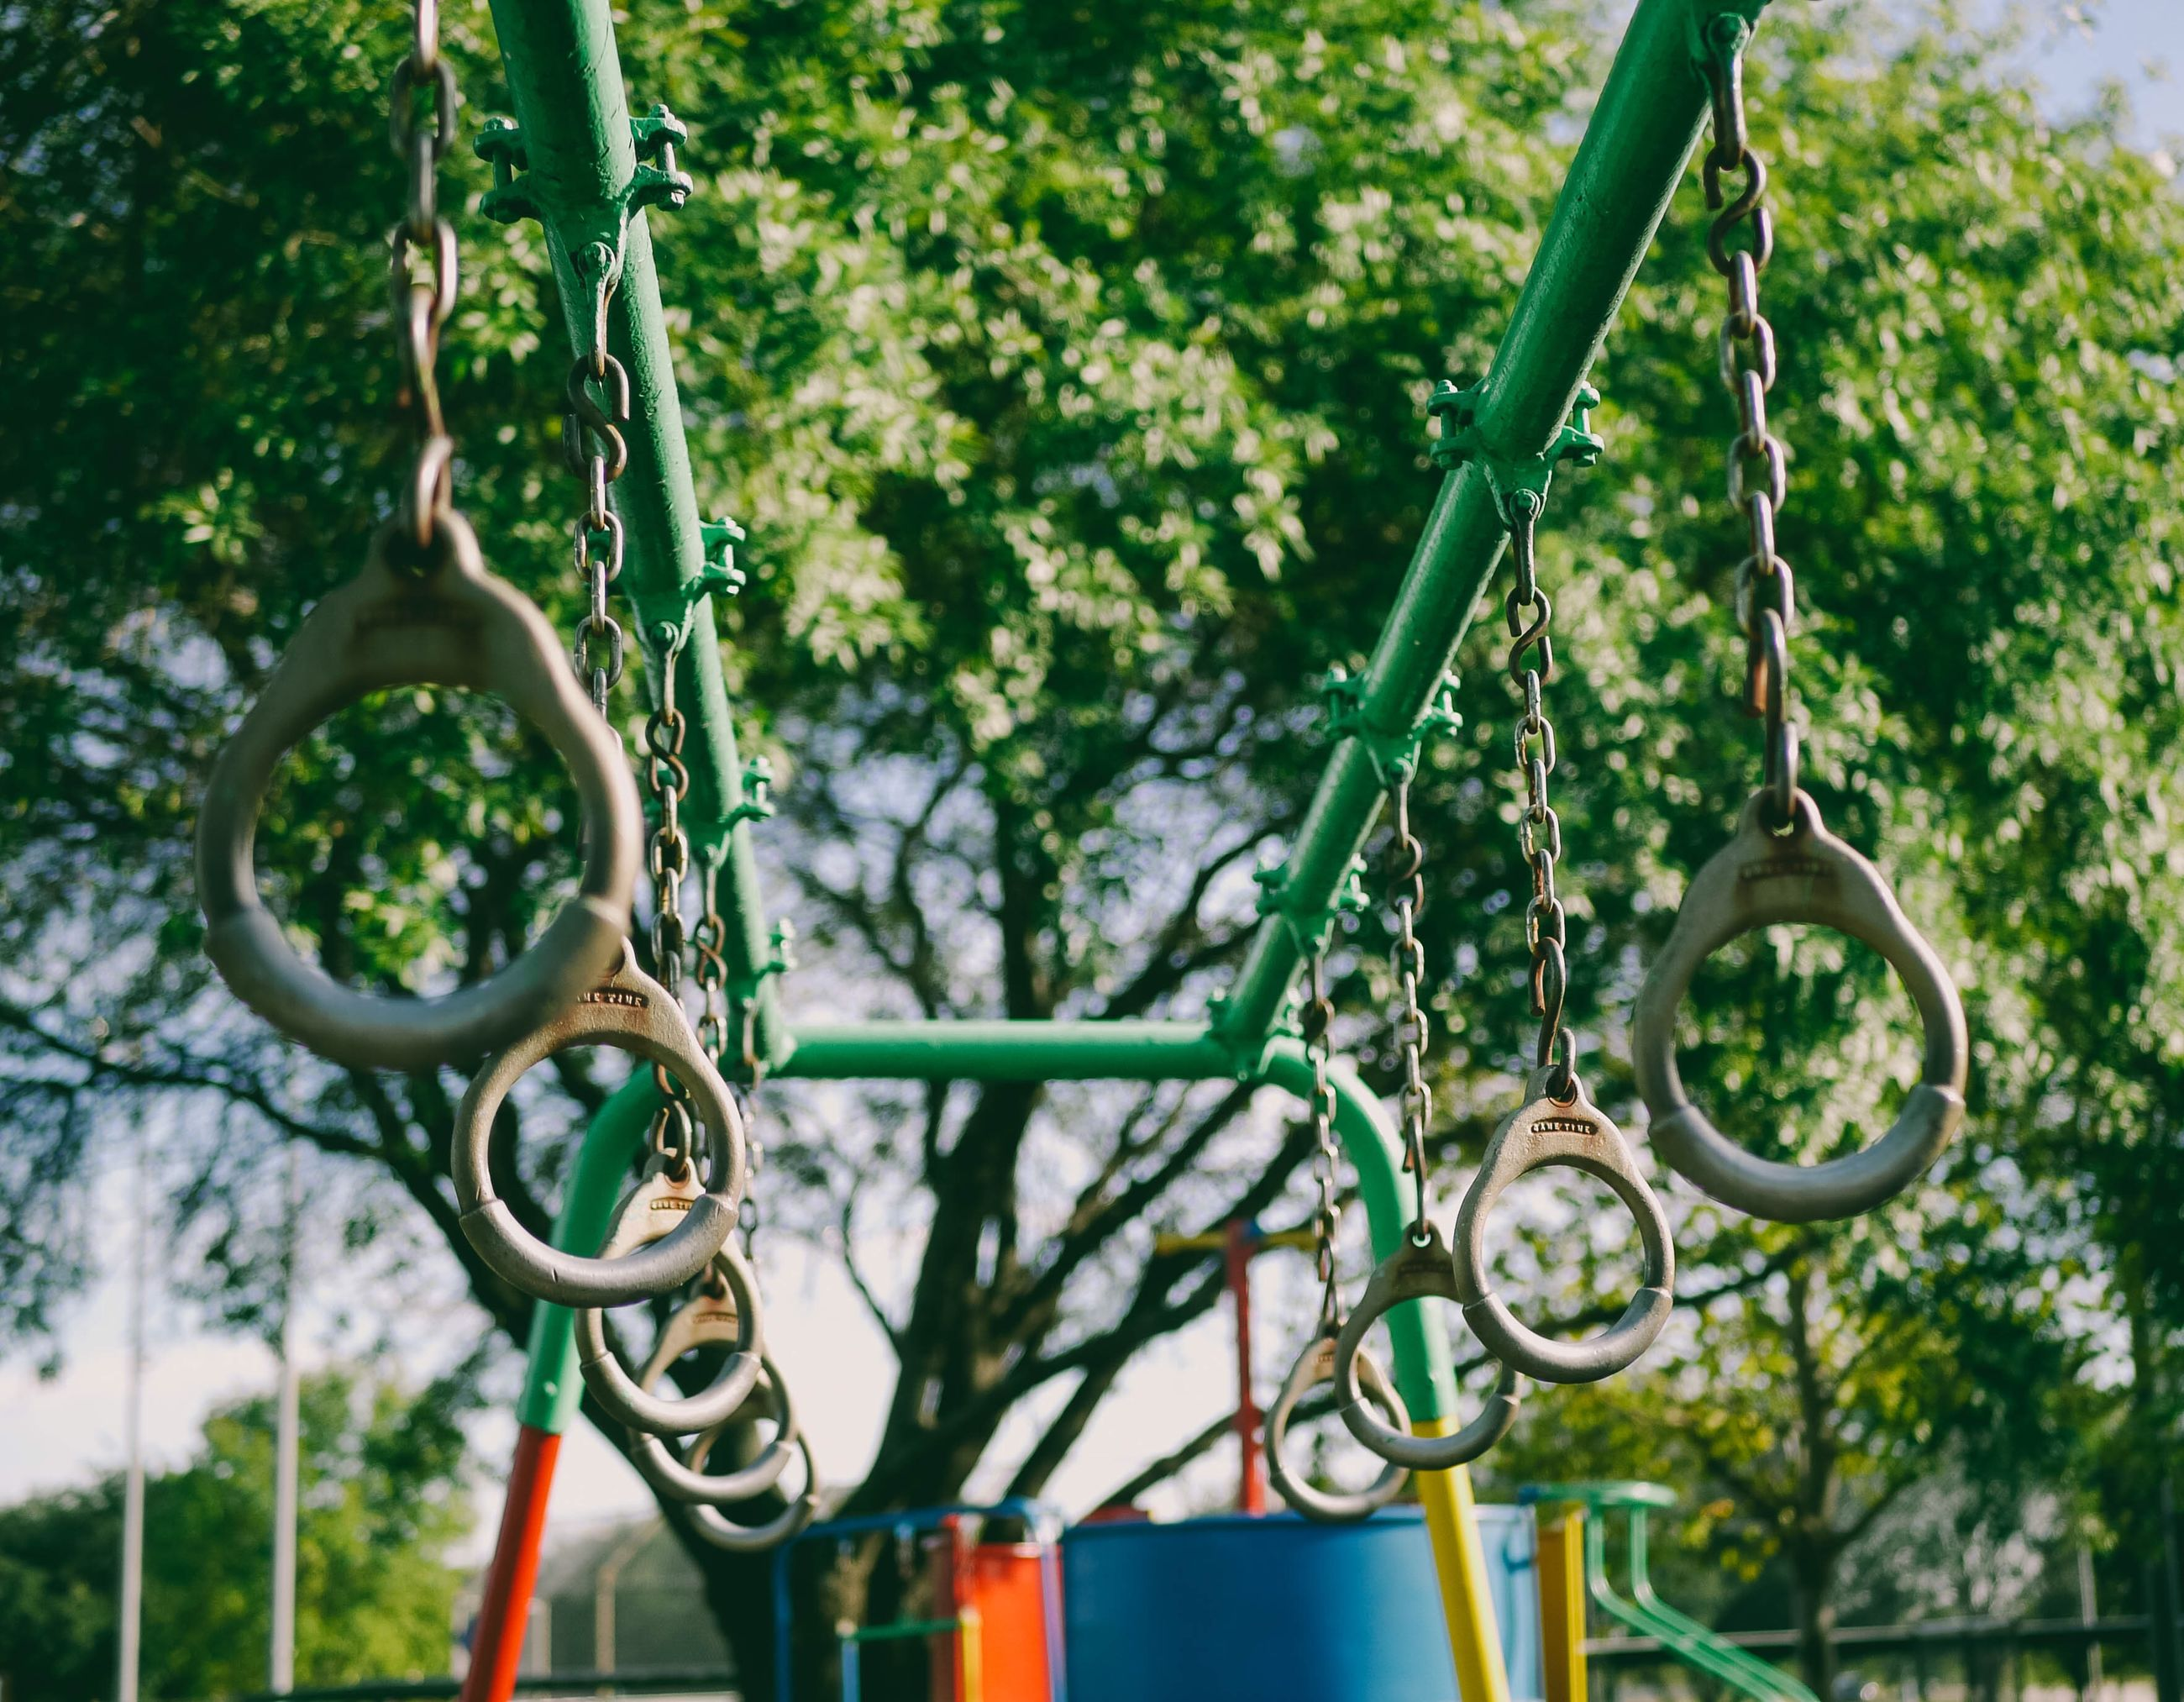 hanging, plant, no people, focus on foreground, metal, day, growth, playground, green color, nature, chain, close-up, outdoors, tree, swing, park, park - man made space, selective focus, low angle view, sunlight, outdoor play equipment